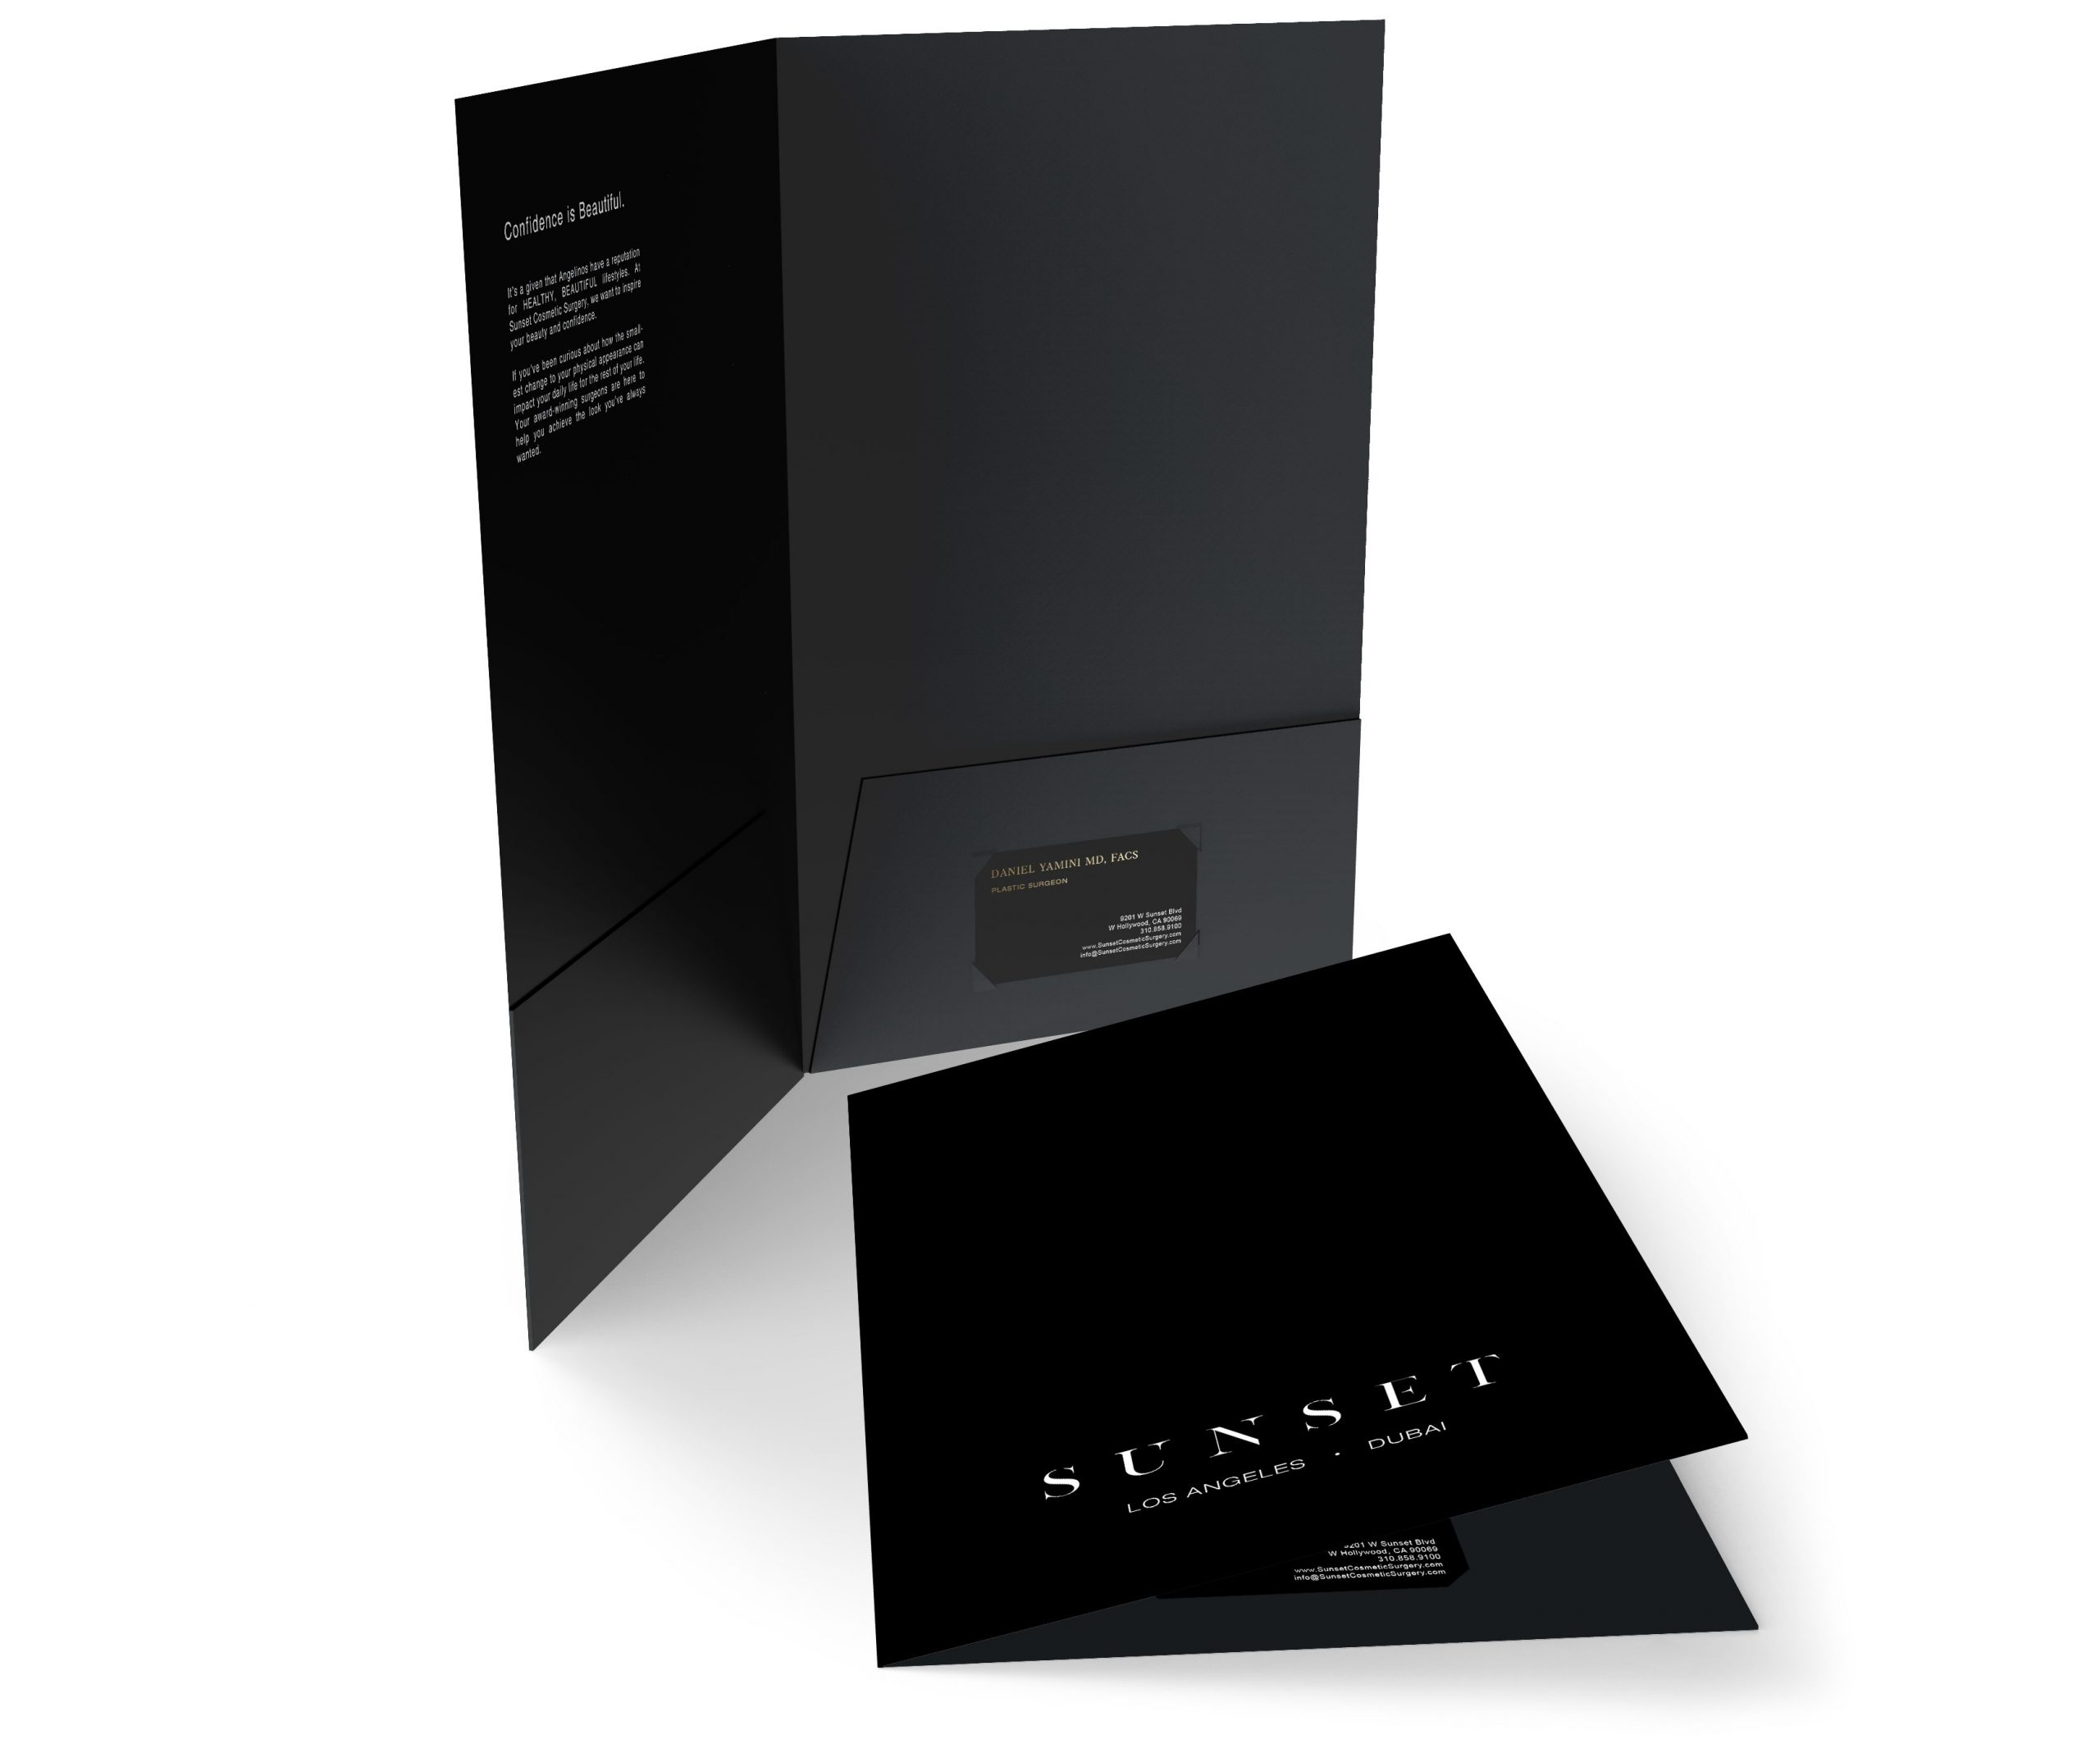 Sunset Cosmetic Surgery Branding Presentation Folder